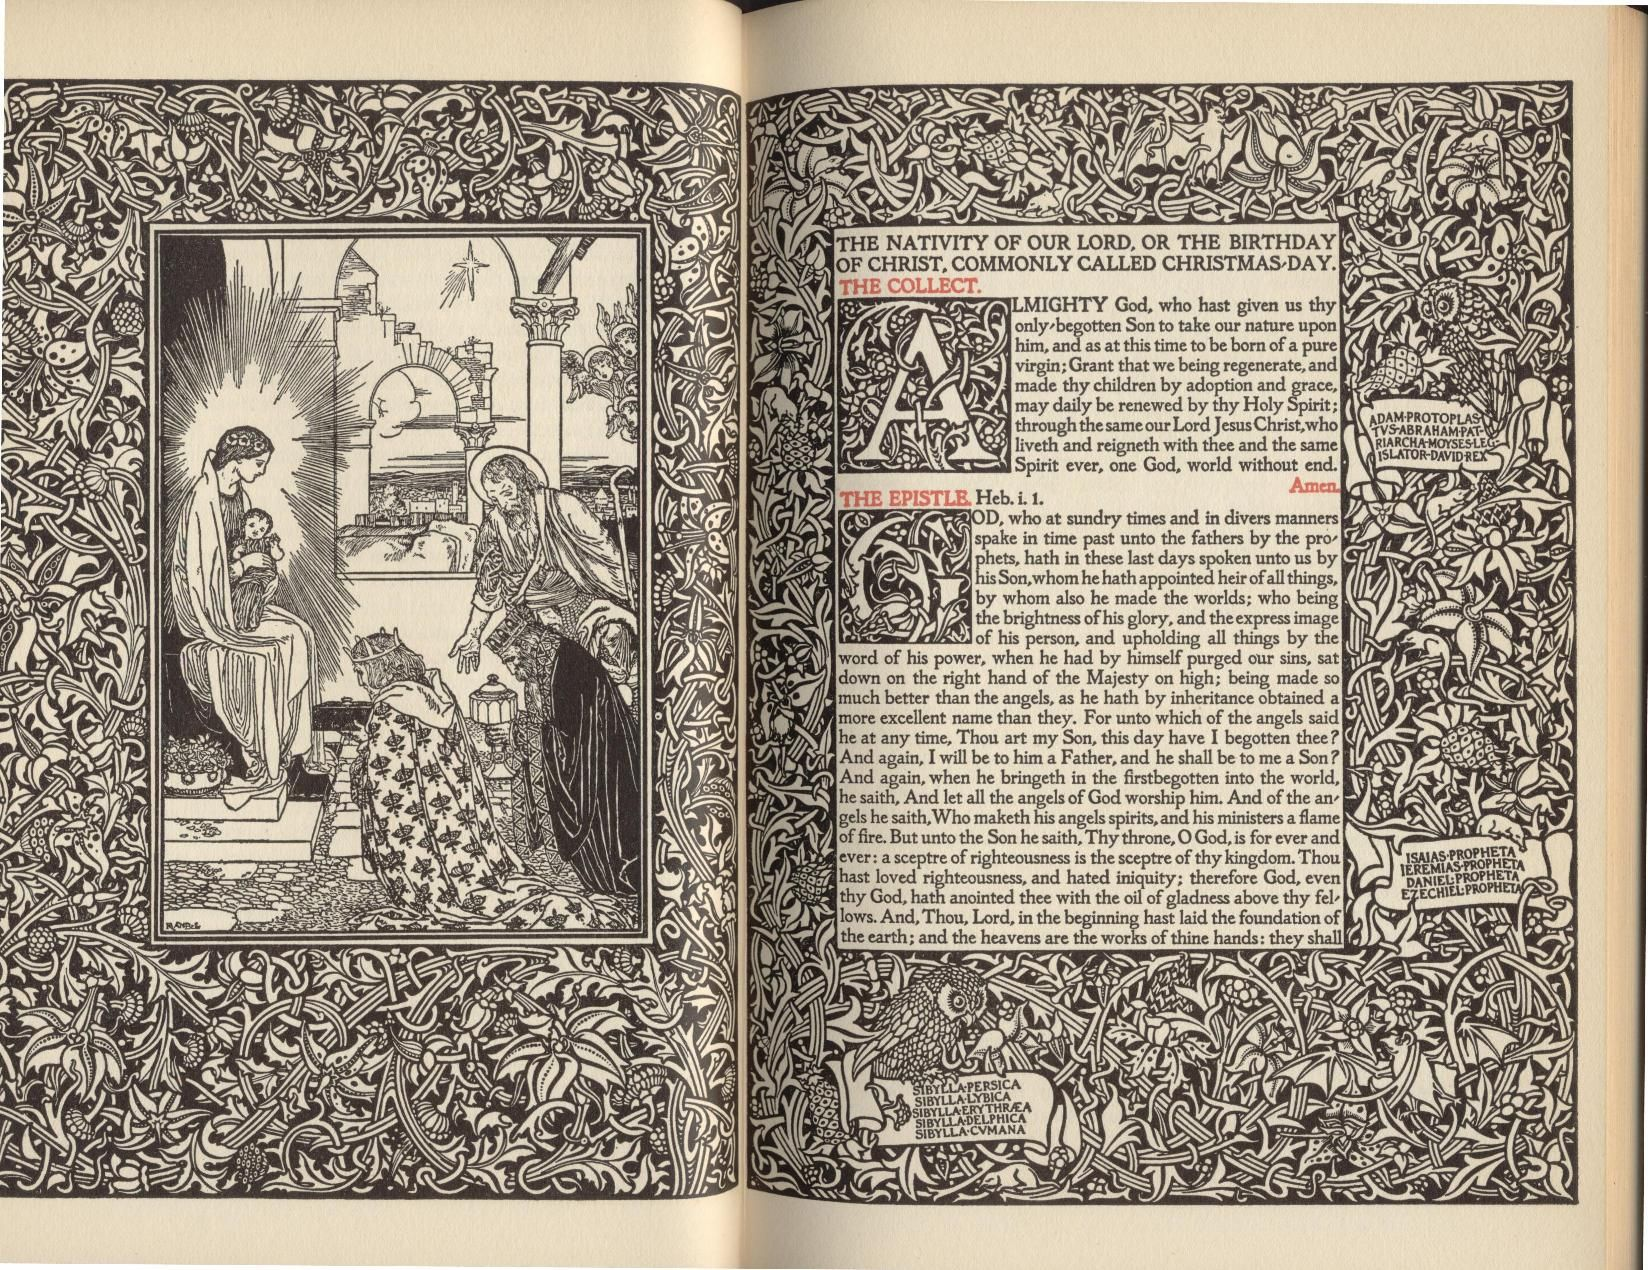 Arts and crafts movement design - Arts And Crafts Movement This Is Essay Number 27 Of Updike A